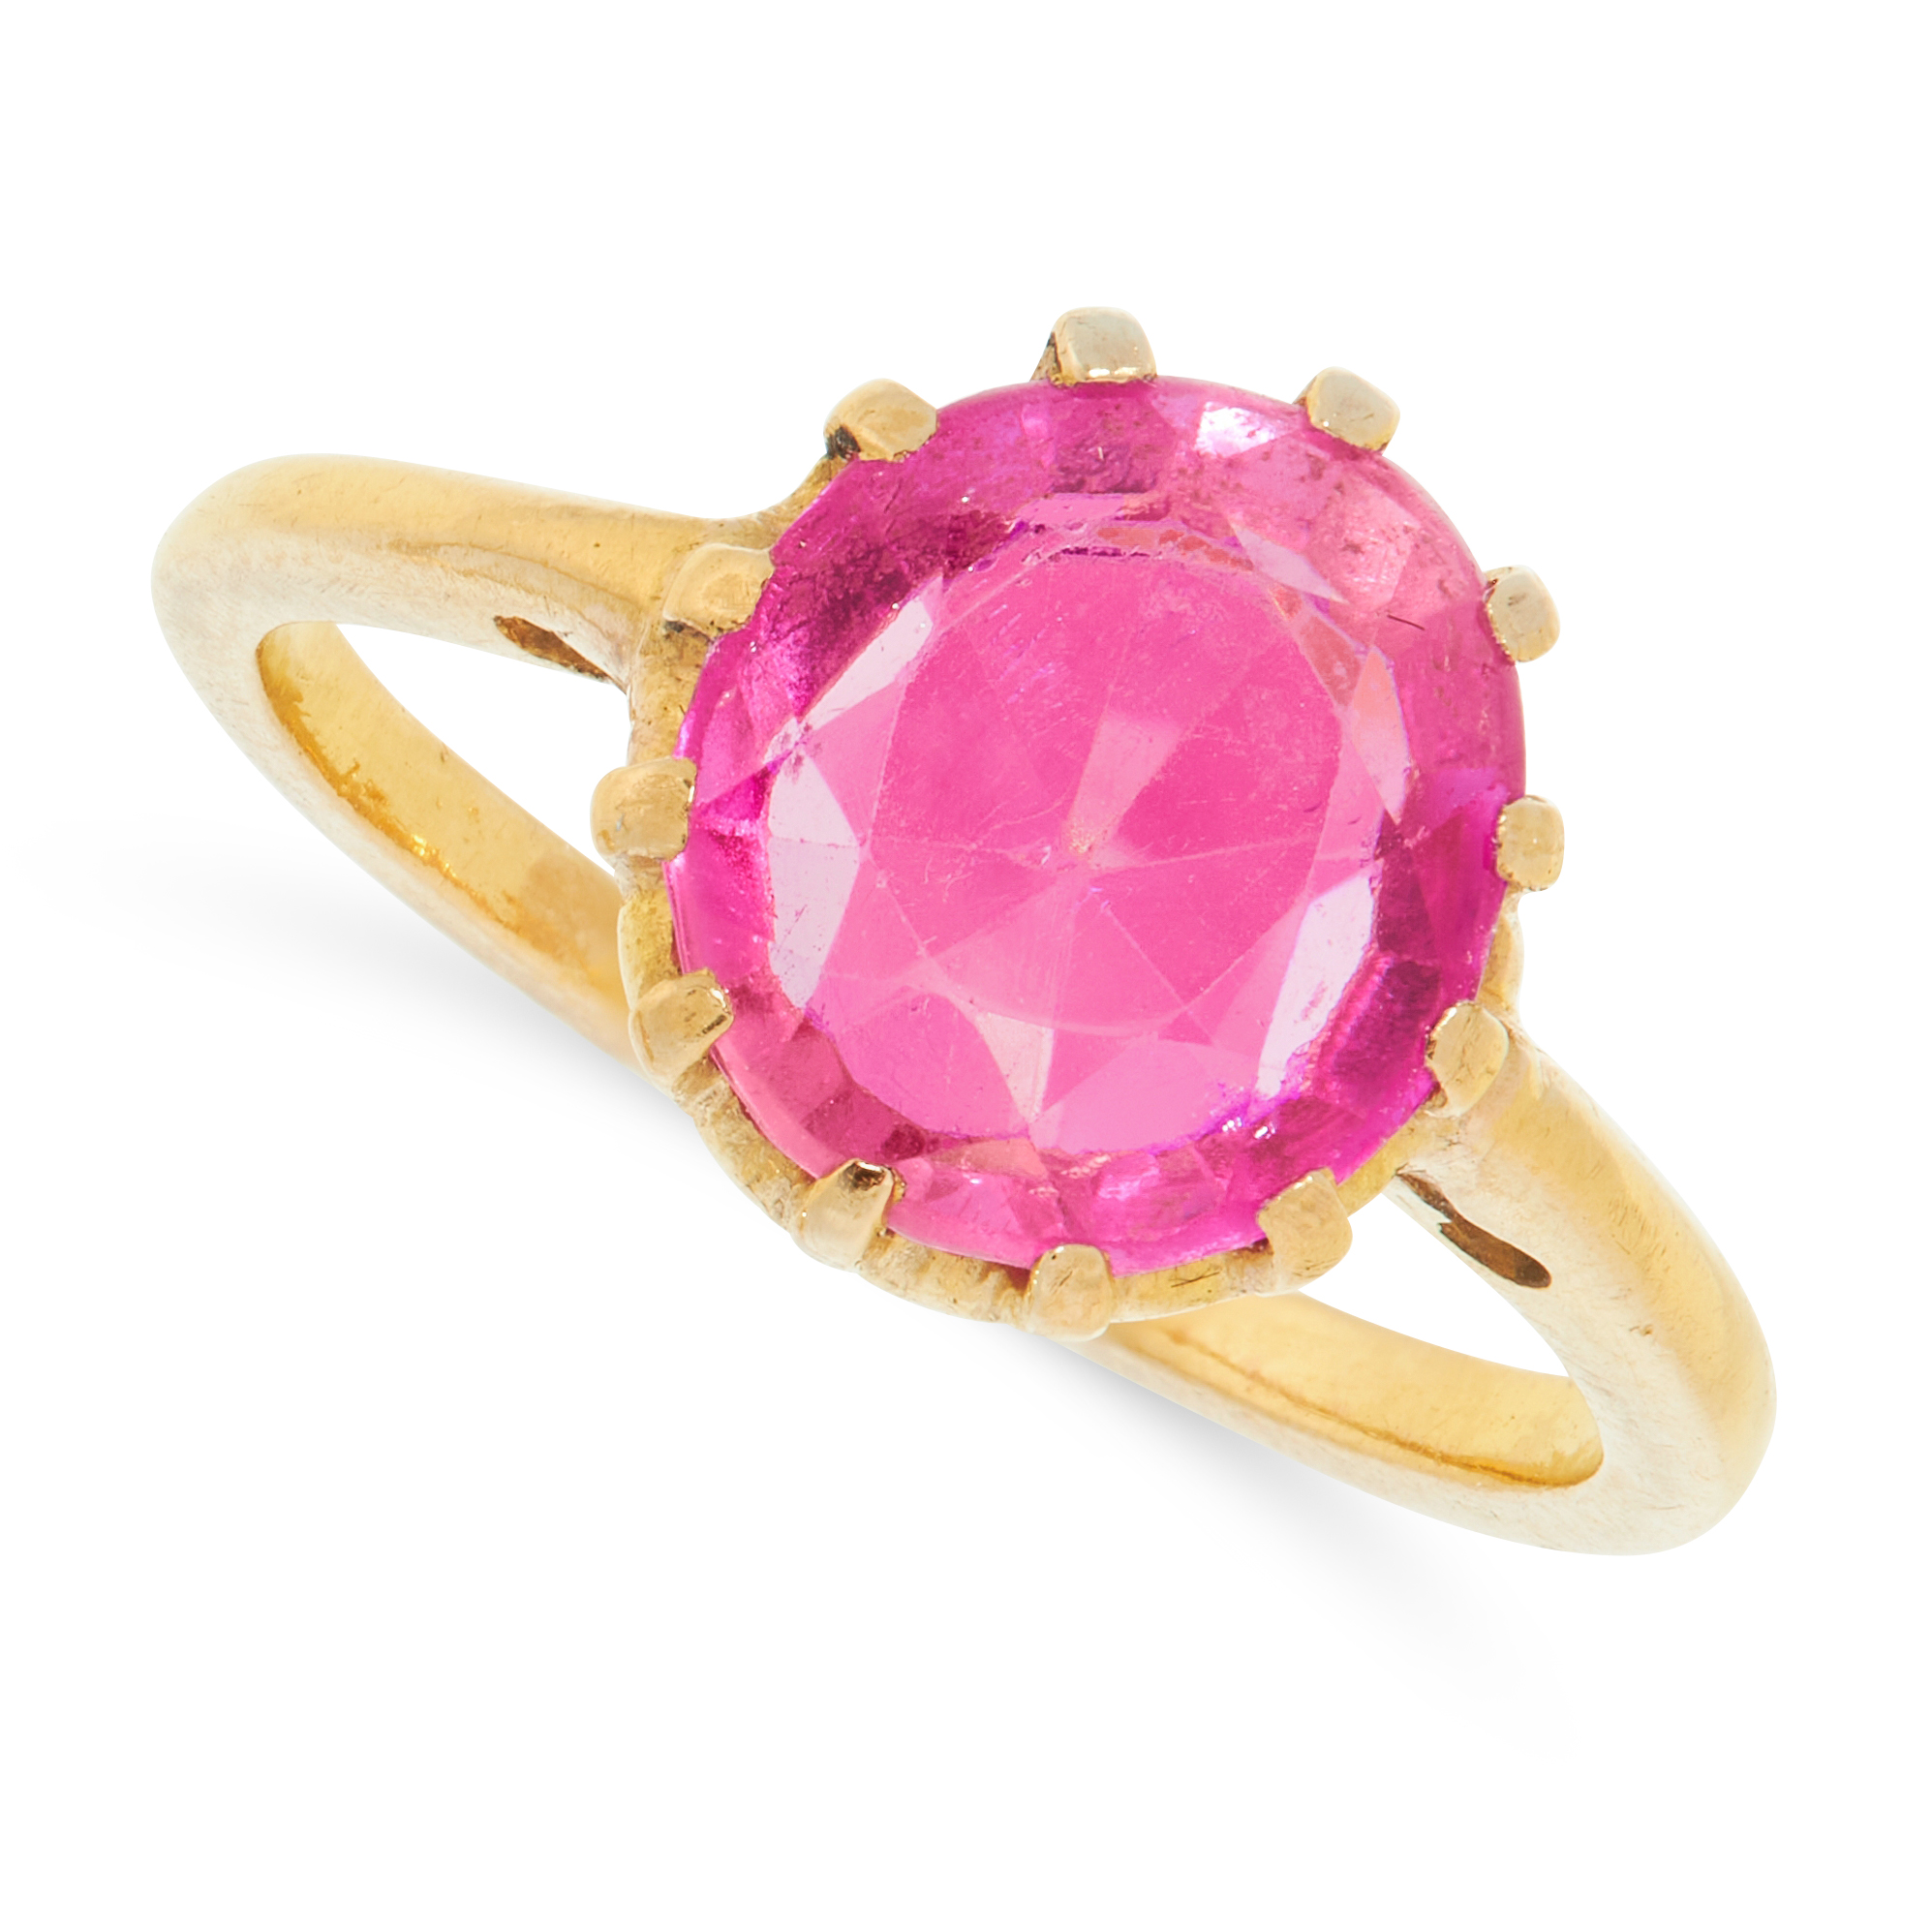 SYNTHETIC RUBY RING in yellow gold, comprising of a claw set synthetic ruby of 2.75 carats,